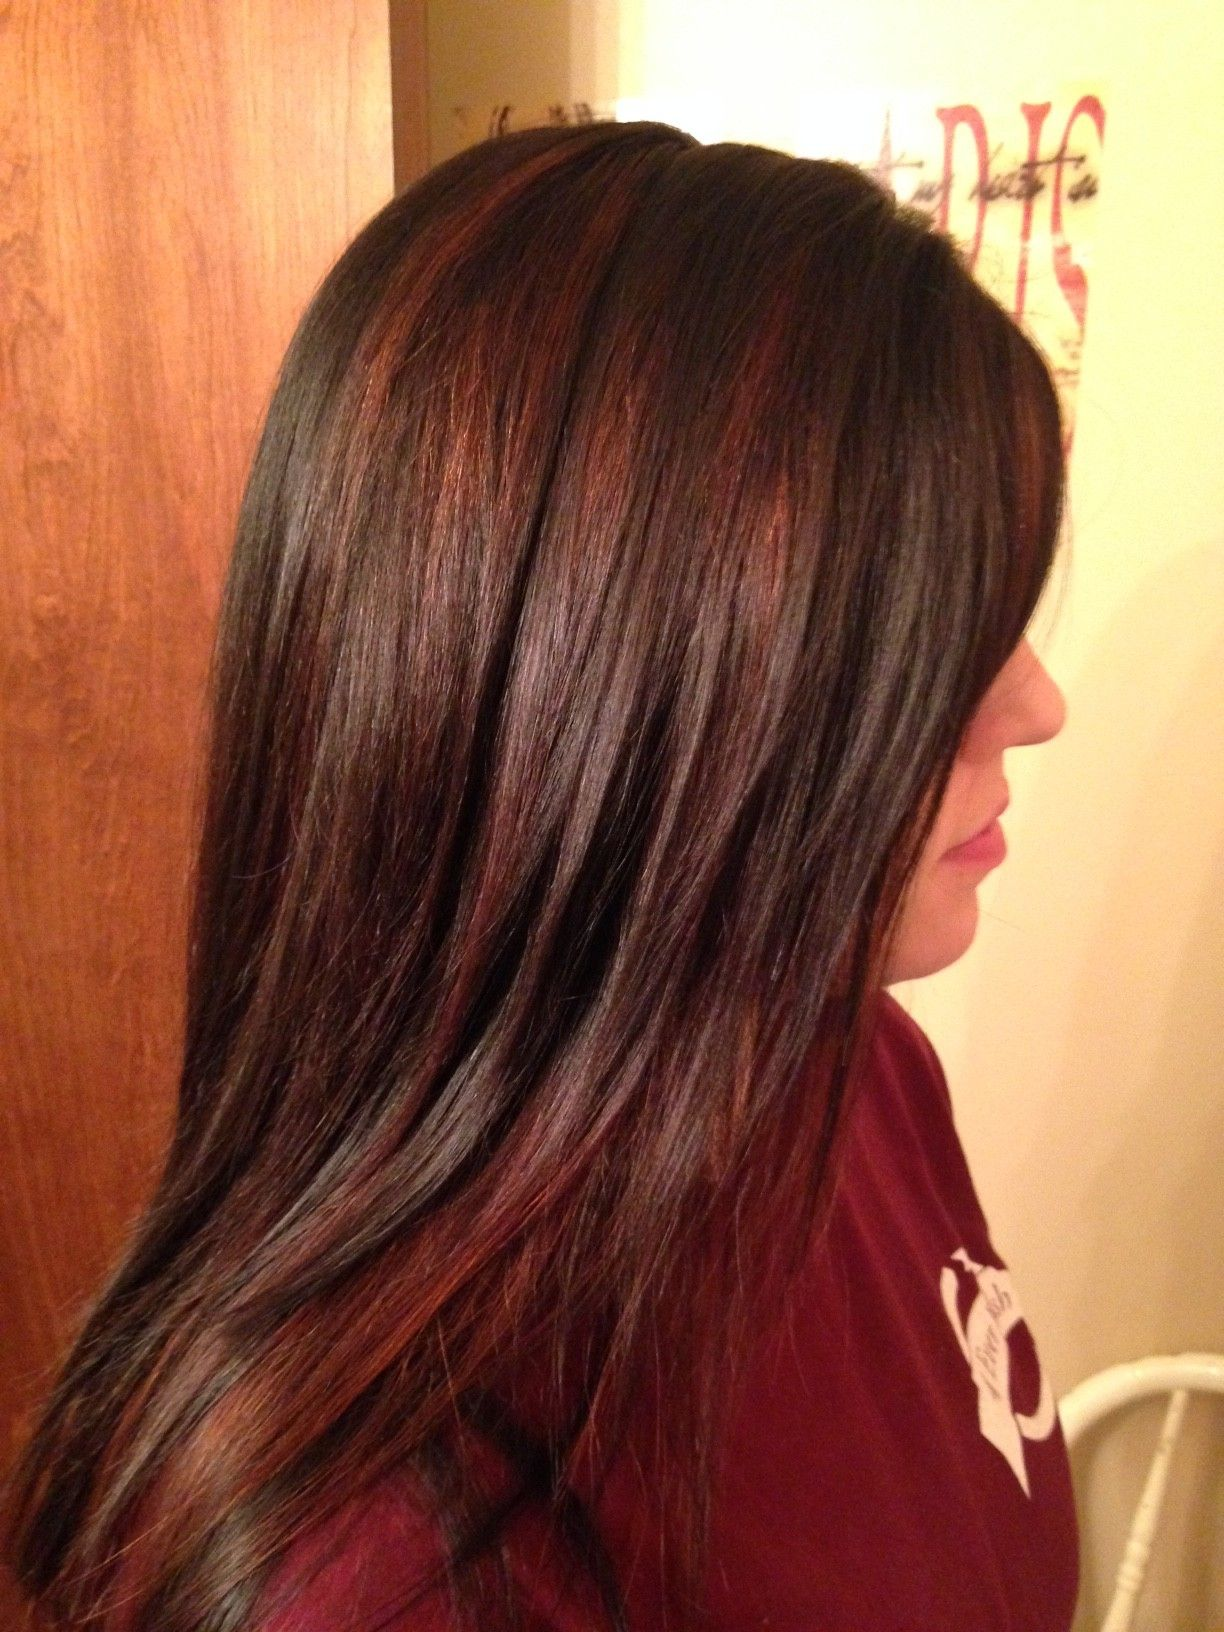 Chocolate Brown with Red Highlights - love! | My Style in ...